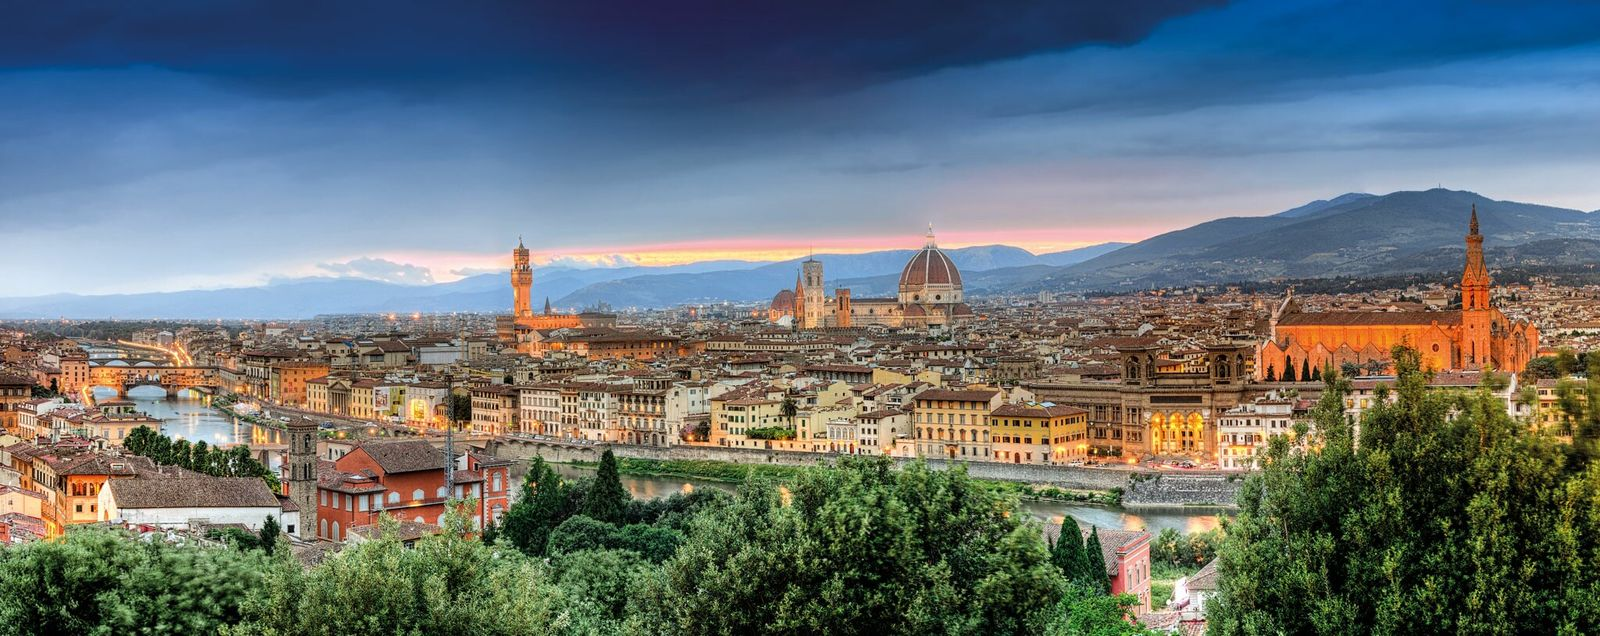 Florence's famous domed cathedral stands near two important sites in Machiavelli's life: the Palazzo Vecchio (left, ...